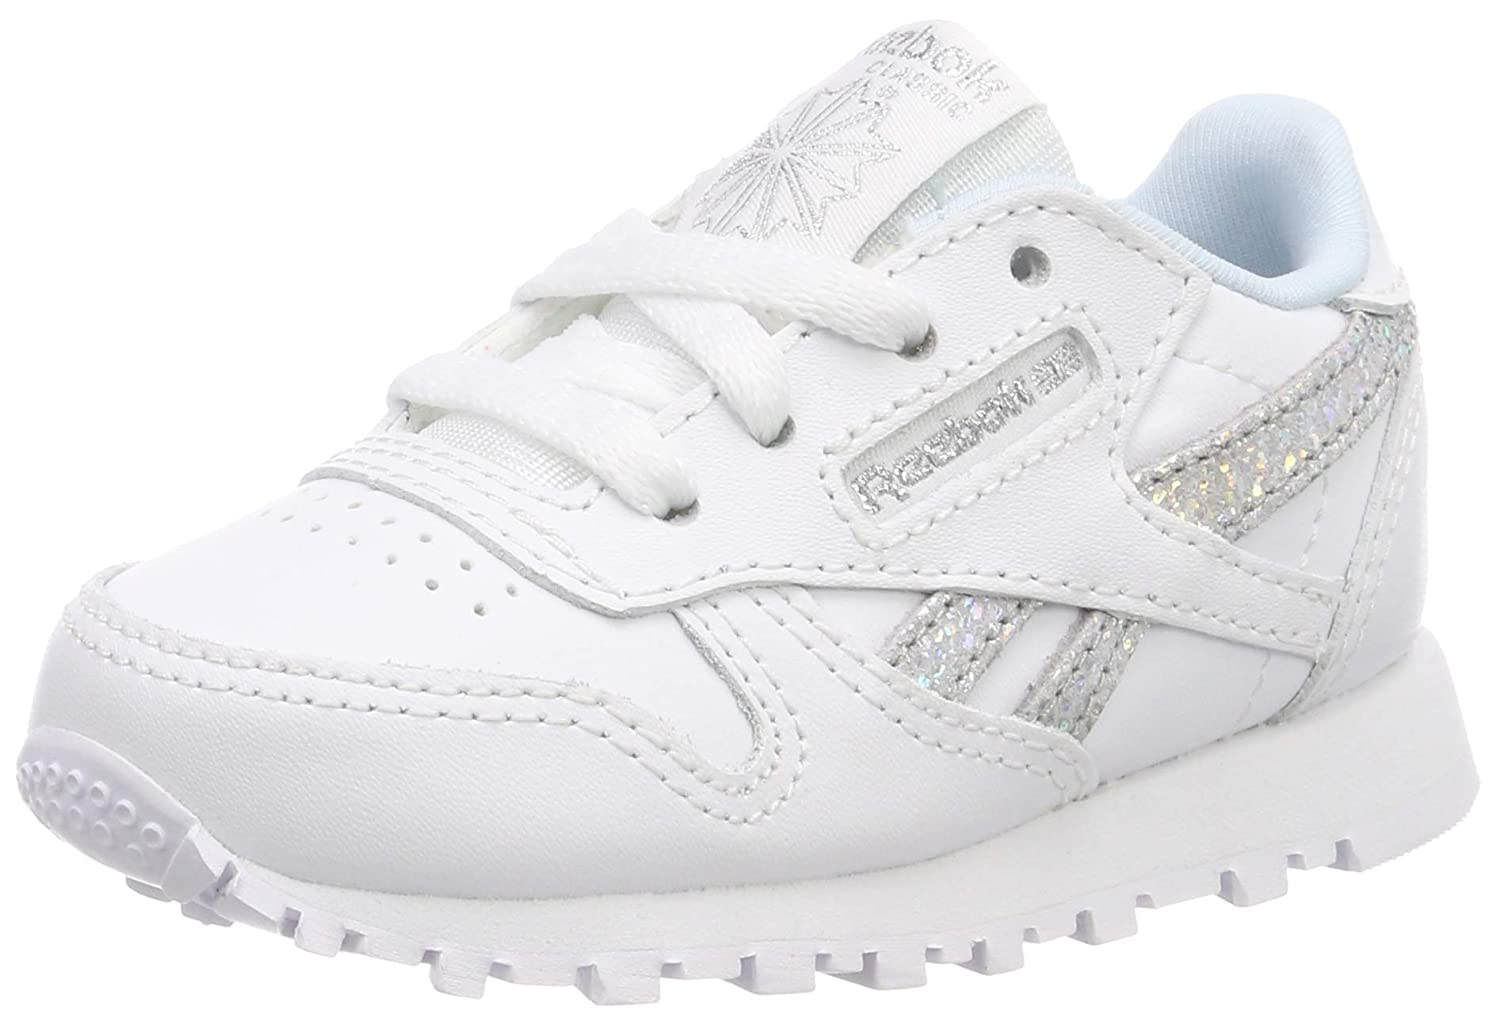 Reebok Classic Leather, Chaussures de Running Bébé